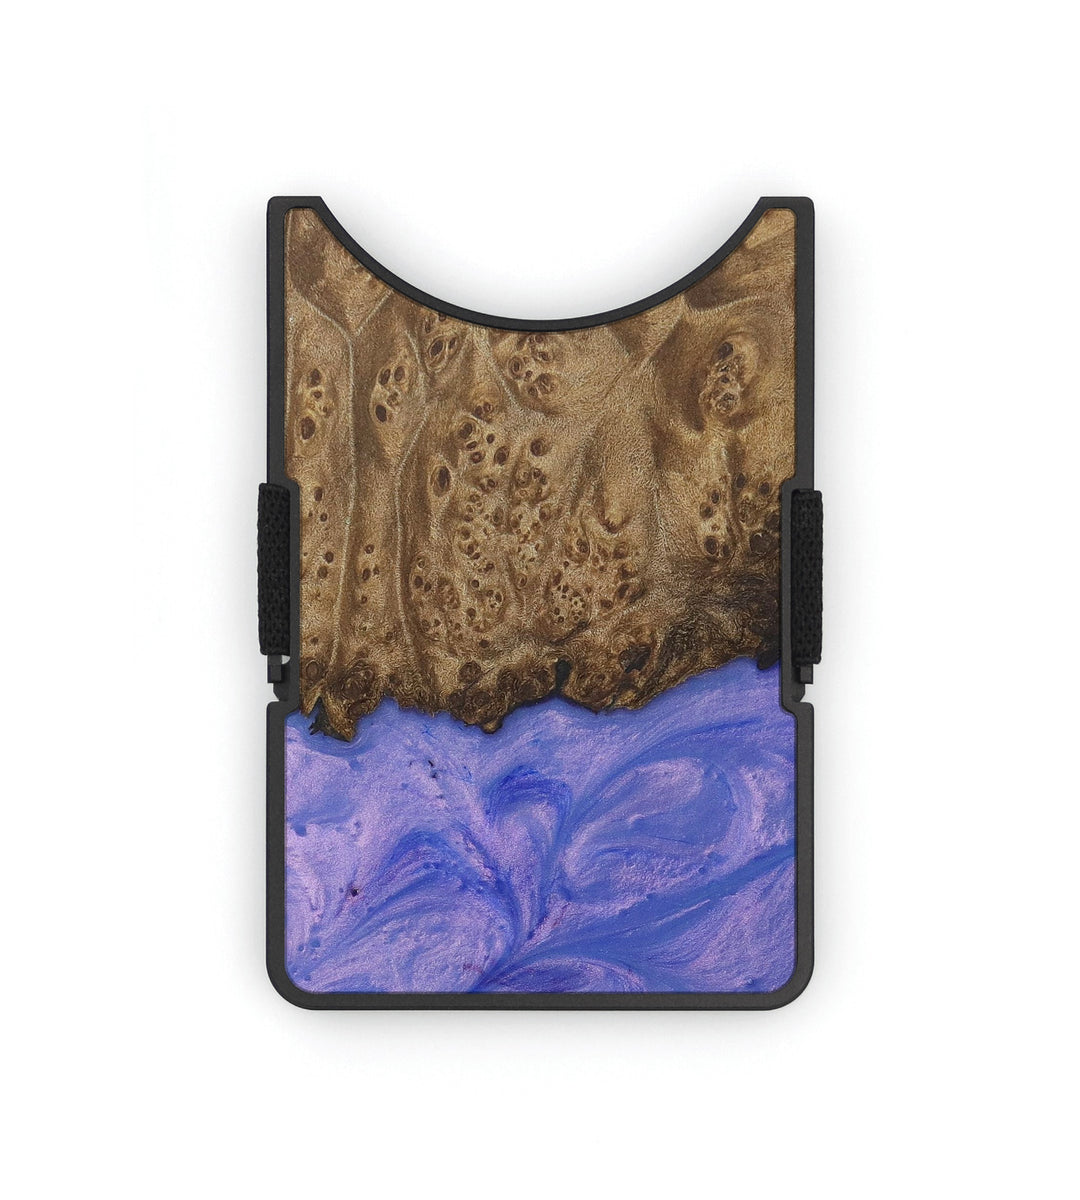 Alloy Wood+Resin Wallet - Wilfred (Purple, 399866)